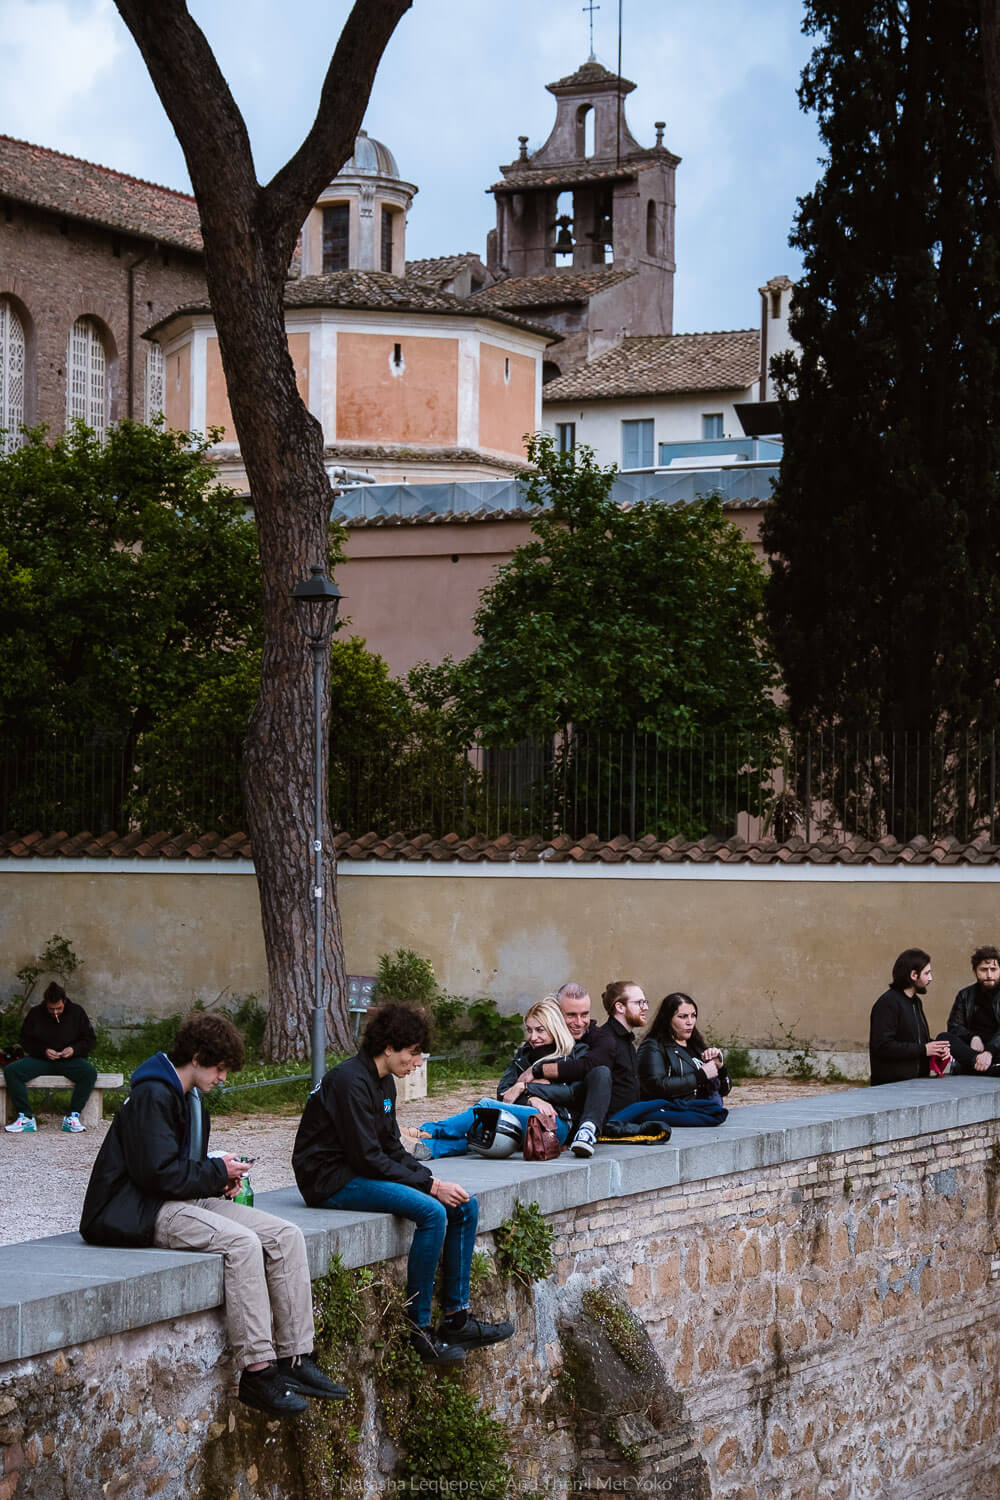 """Locals enjoying the view in the Orange garden. Travel photography and guide by © Natasha Lequepeys for """"And Then I Met Yoko"""". #rome #italy #travelblog #travelphotography"""